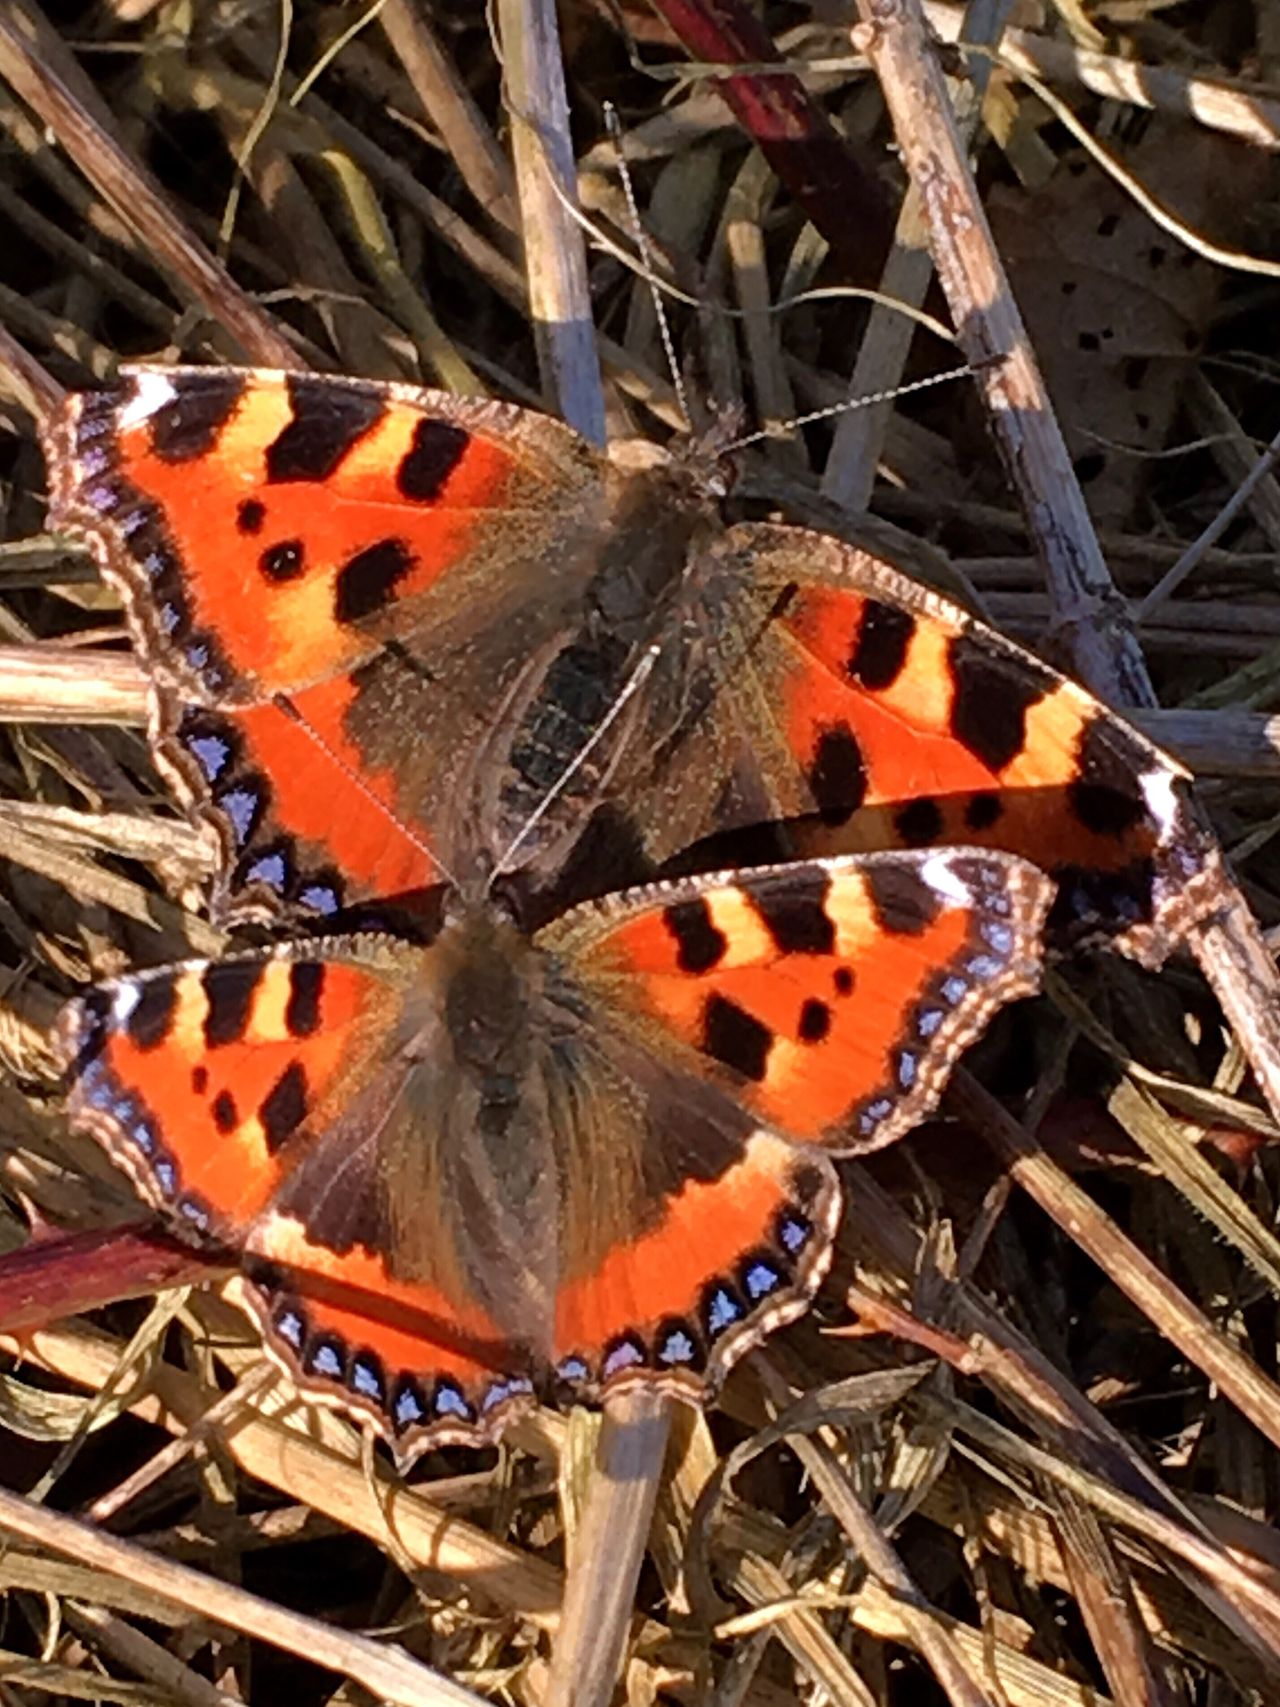 Small Tortoiseshell Butterflies Sunbathing Lepidoptera Insects  Entomology Nature Close-up No People Outdoors Day Beauty In Nature Wildlife Animal Themes Animals In The Wild